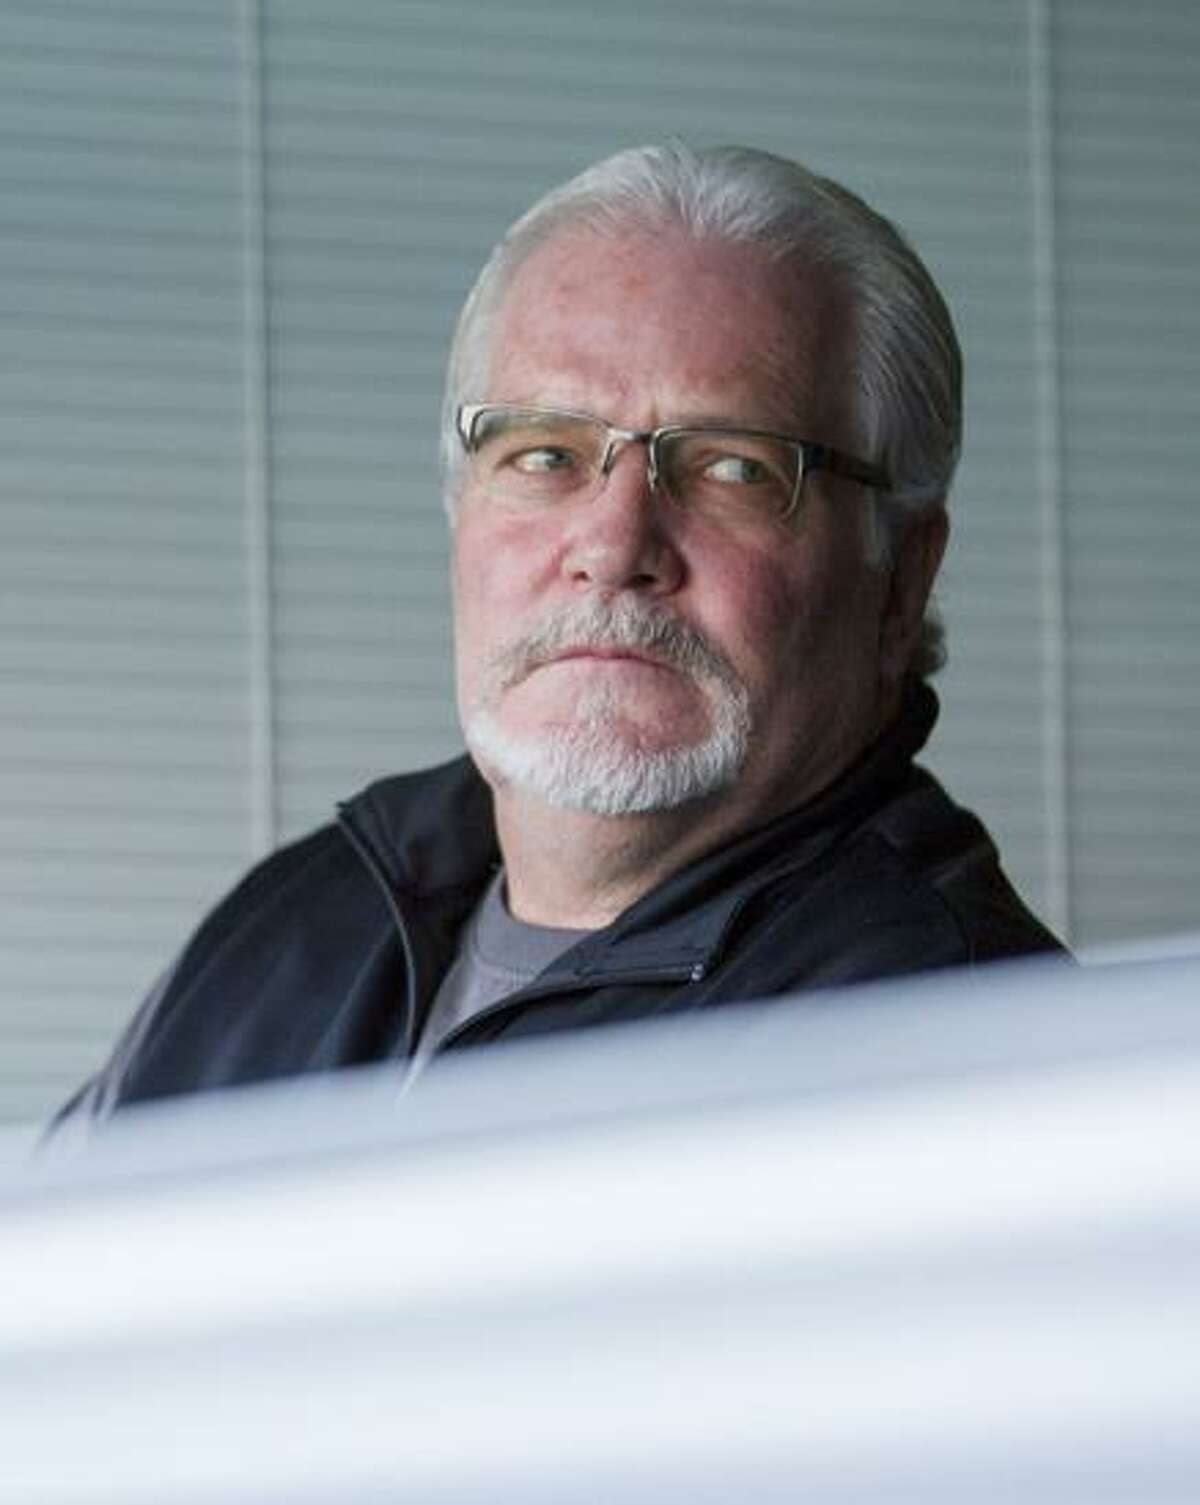 San Francisco Giants general manager Brian Sabean watches the first inning of an MLB game between the Giants and the Arizona Diamondbacks at AT&T Park on Saturday, Sept. 16, 2017, in San Francisco, Calif. The Diamondbacks shutout the Giants 2-0 with a two-run homer in the first inning.